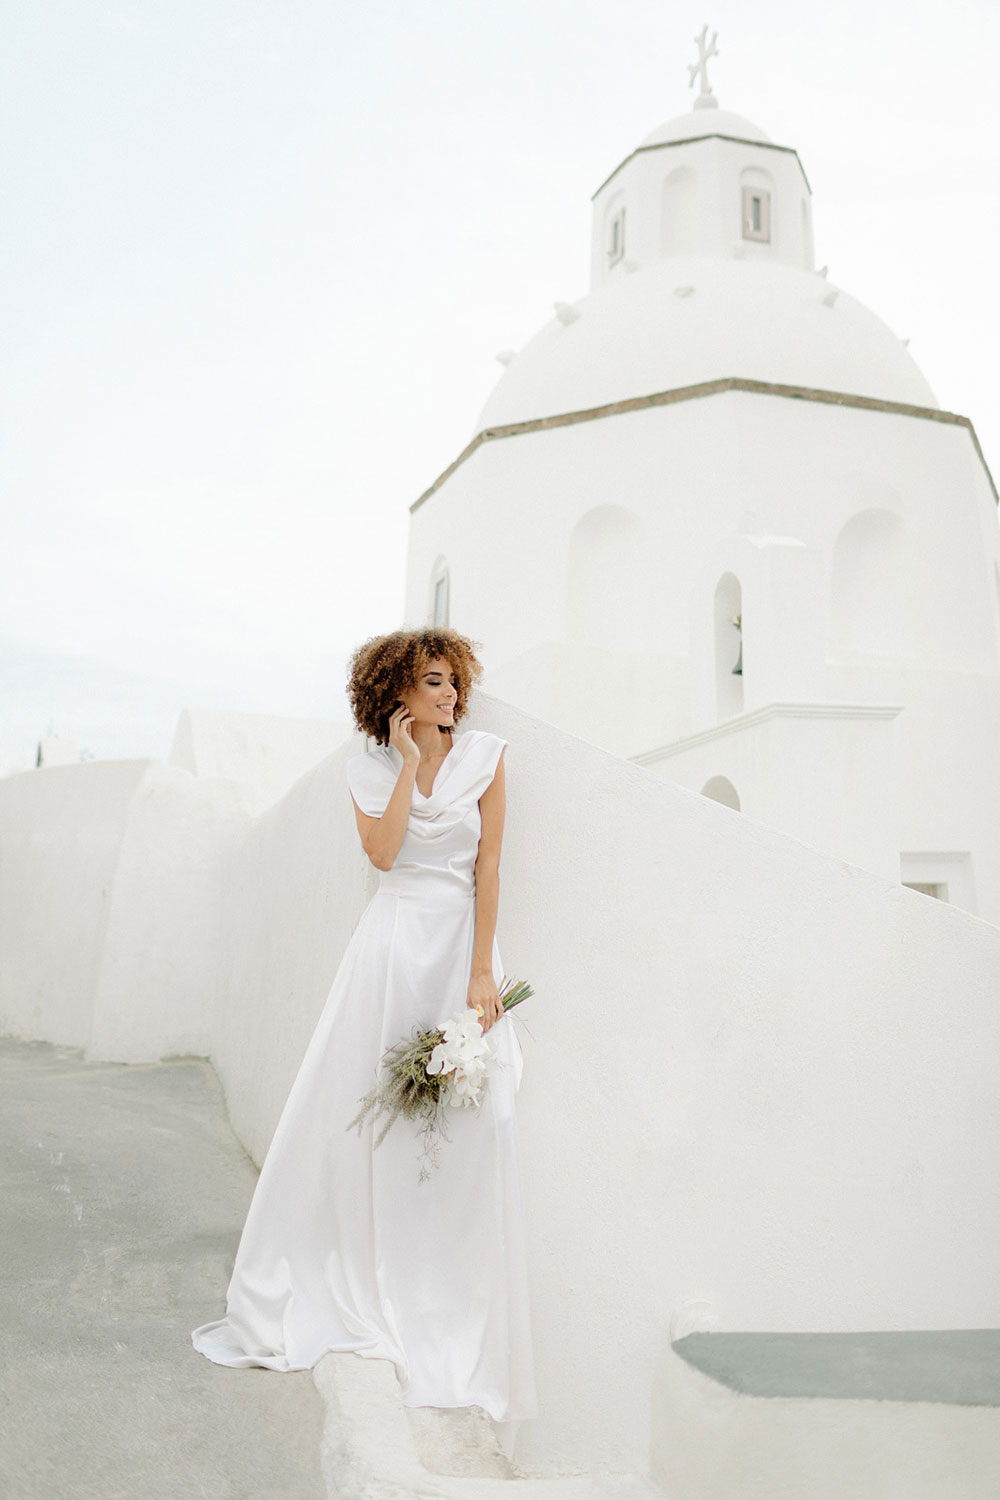 The second wedding dress was a plain one with a cowl neckline and a train, it looked minimalist and very chic